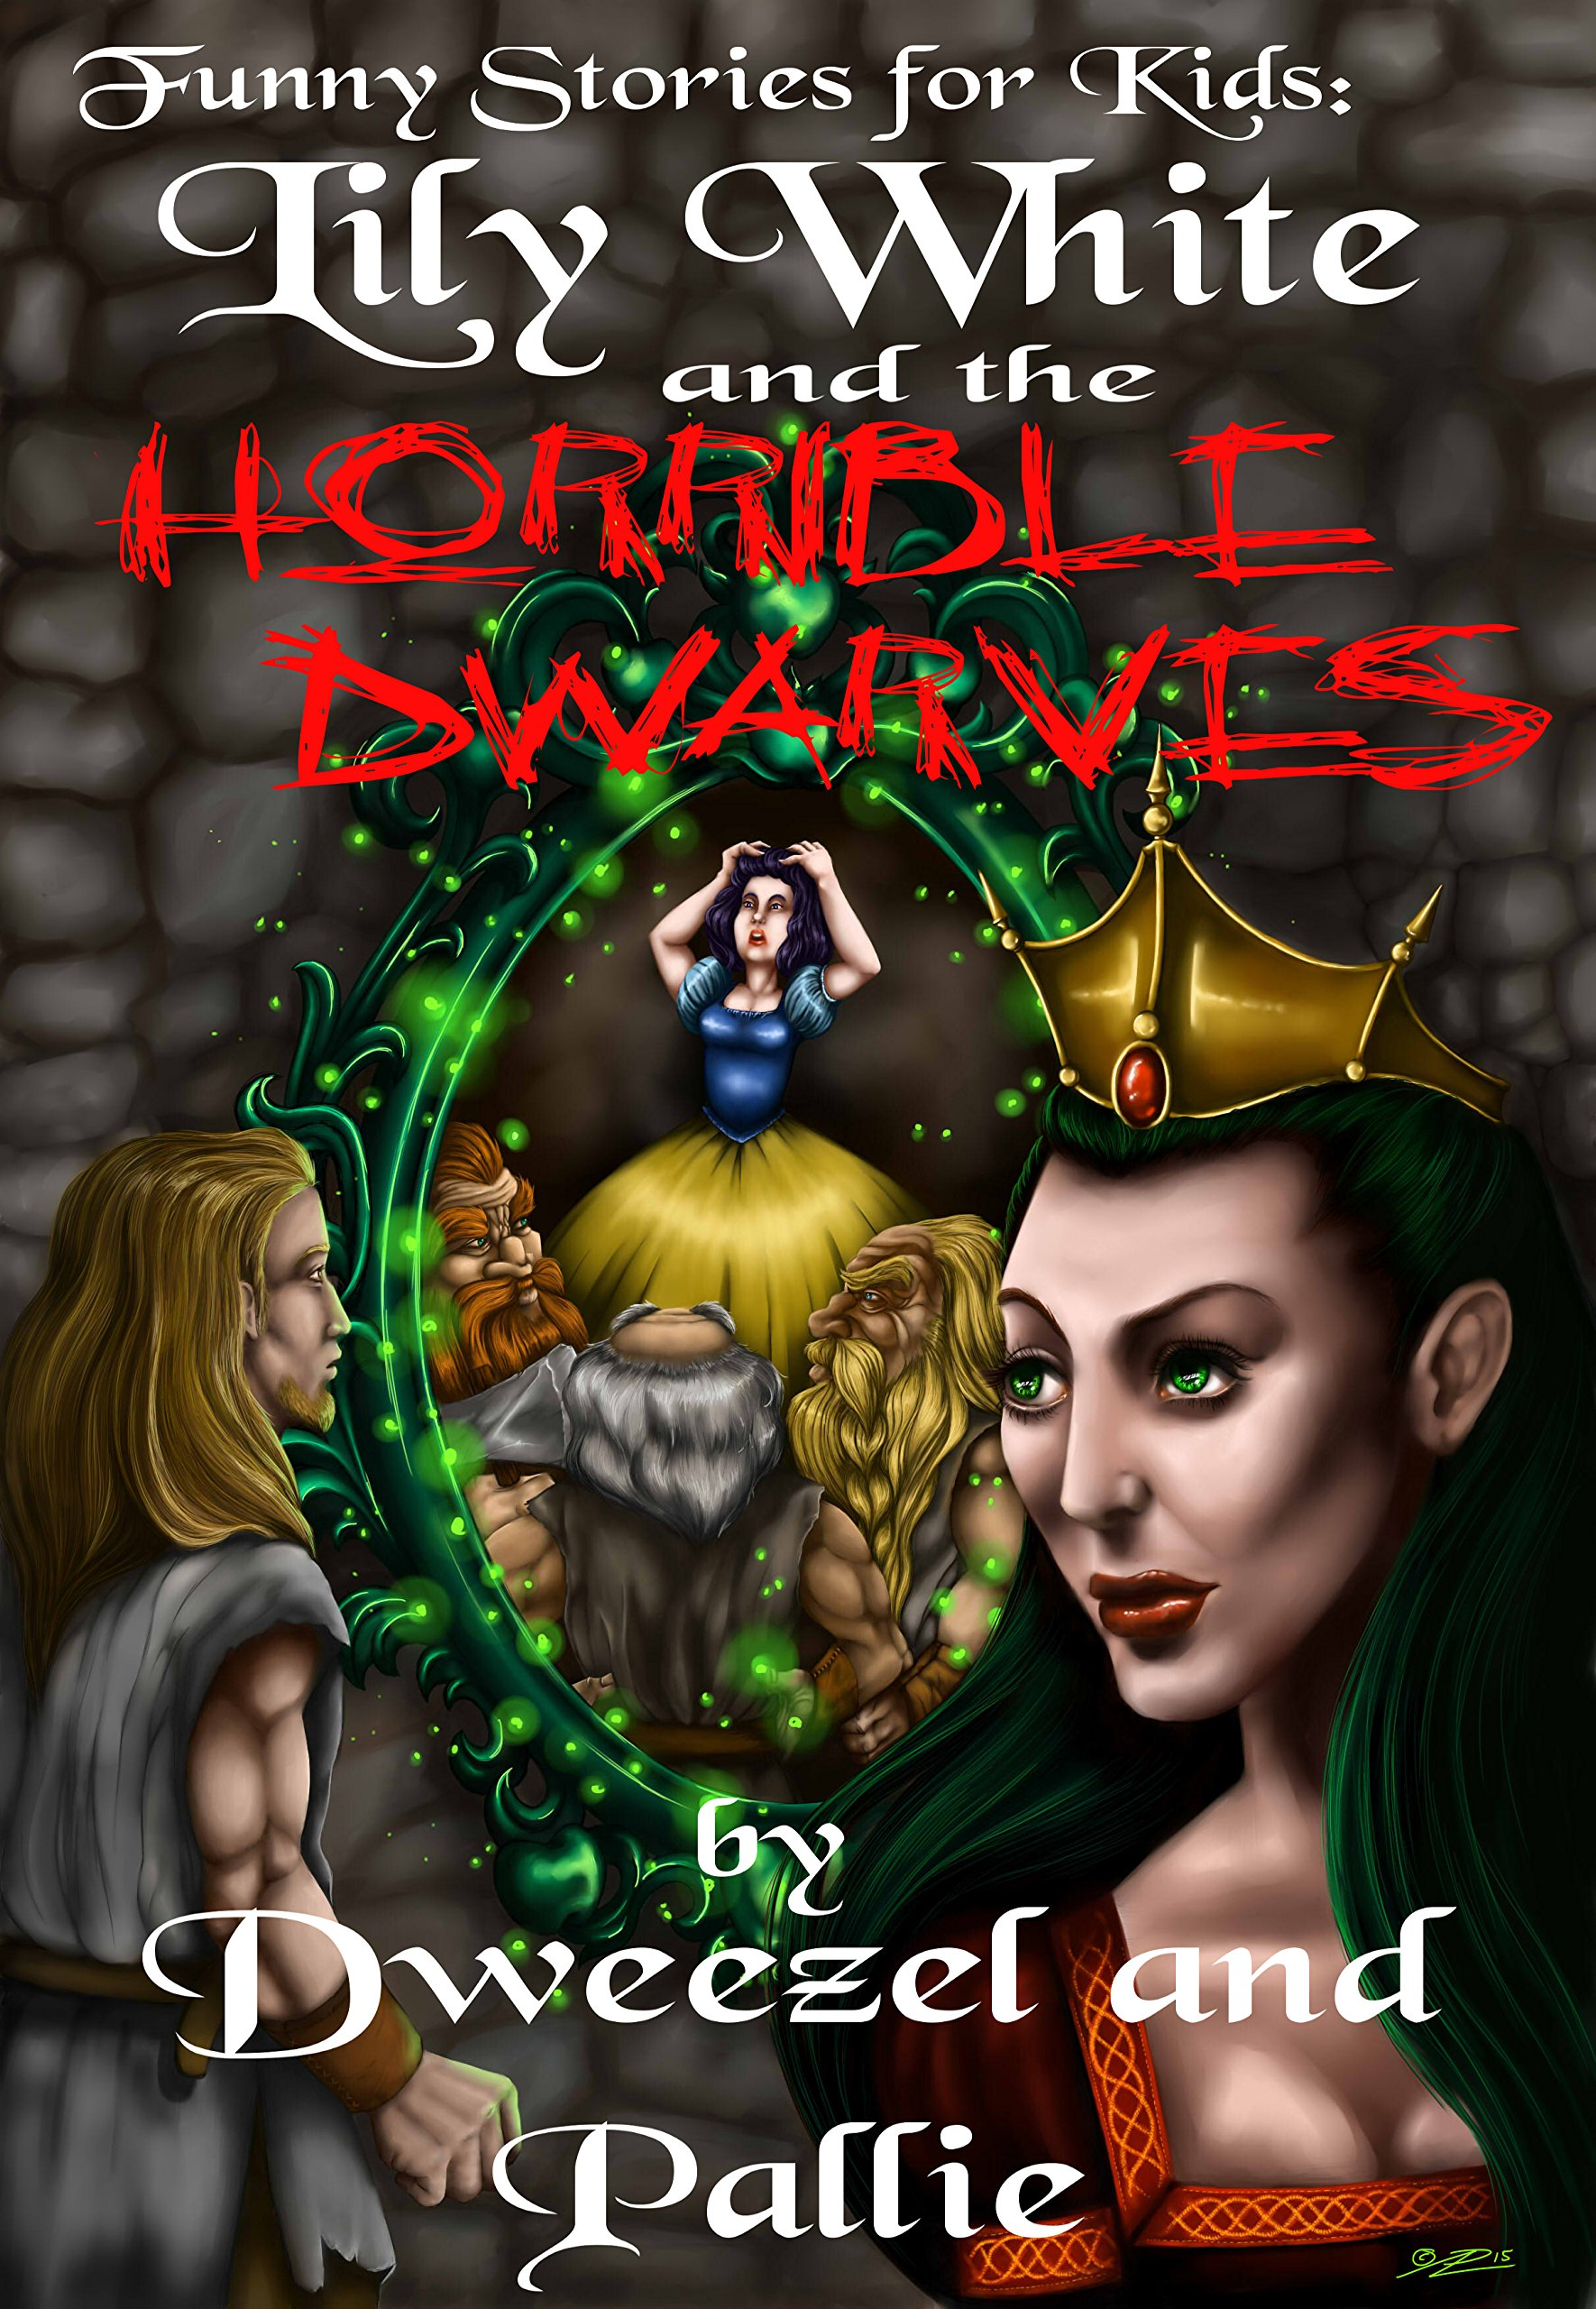 Reviews: Funny Stories for Kids: Lily White and the Horrible Dwarves